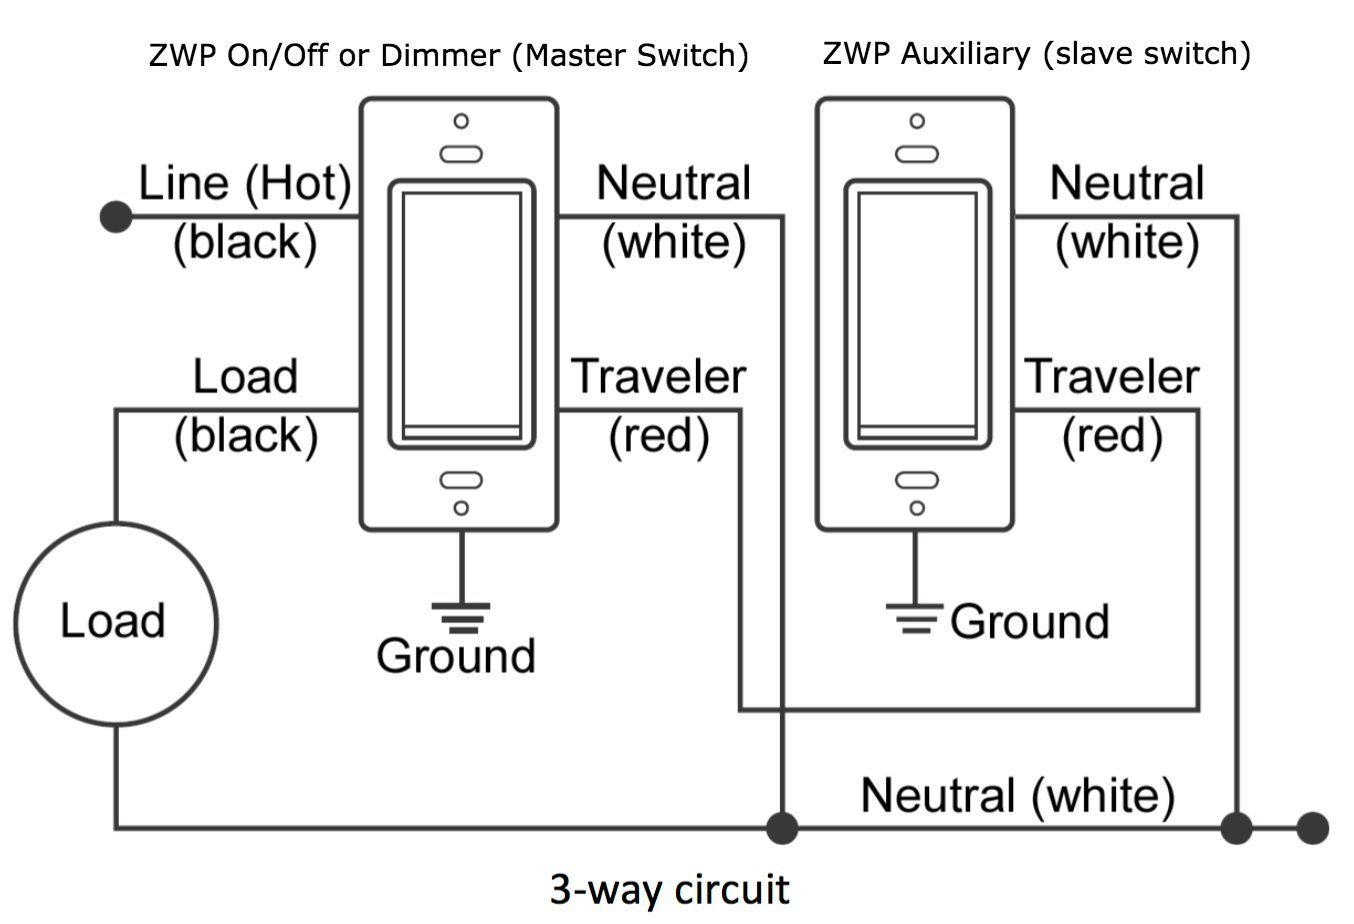 Zwp Z Wave Add On Auxiliary Switch For Three Way And Four Smart How To Wire A Basic 3way Lighting Control Not Standalone Works With Dimmer Or Off